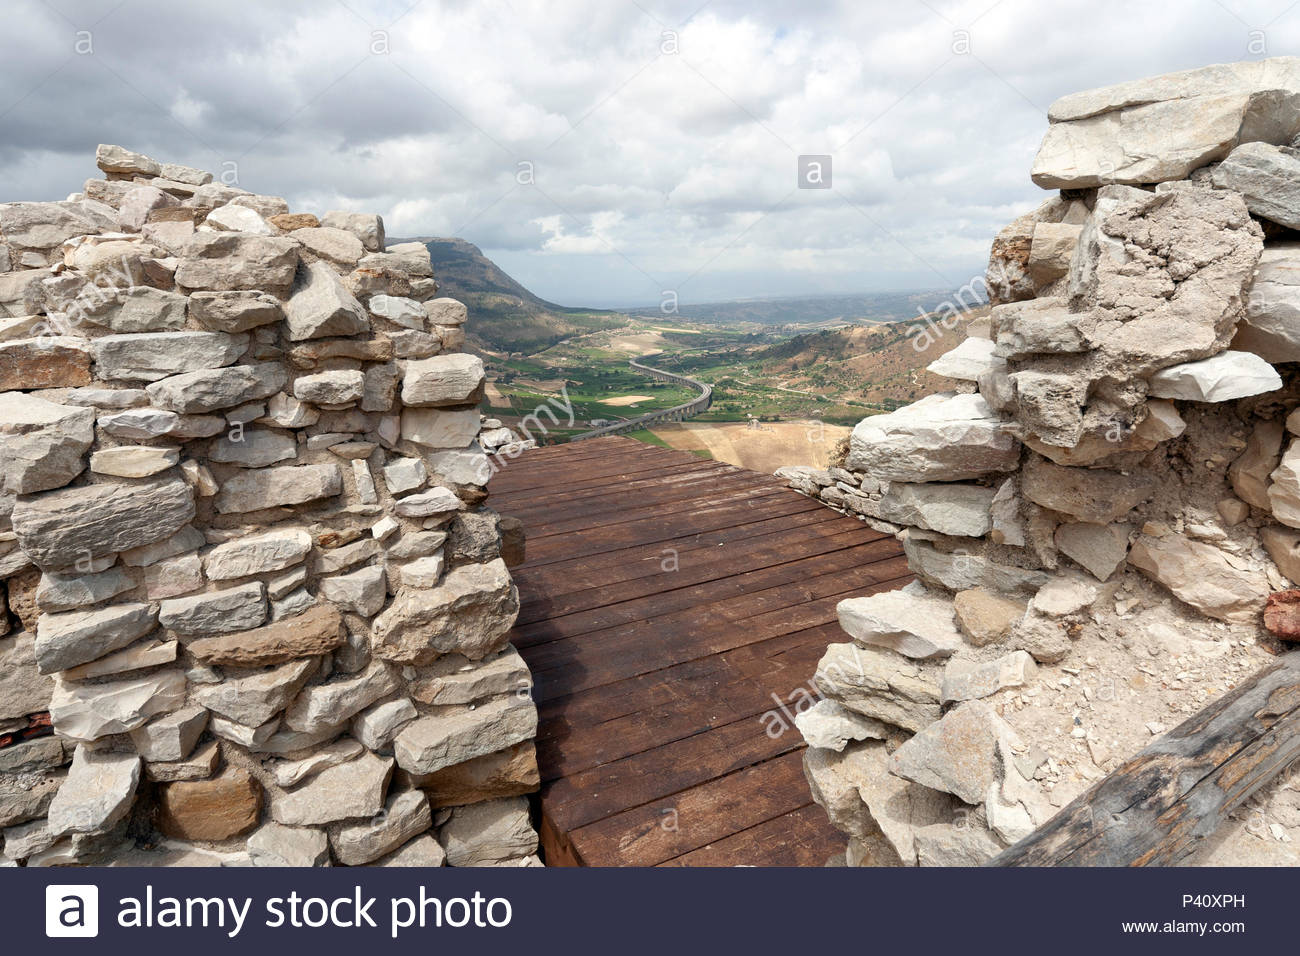 Palermo - Mazara highway from stonewalls of castle in Segesta, Italy - Stock Image